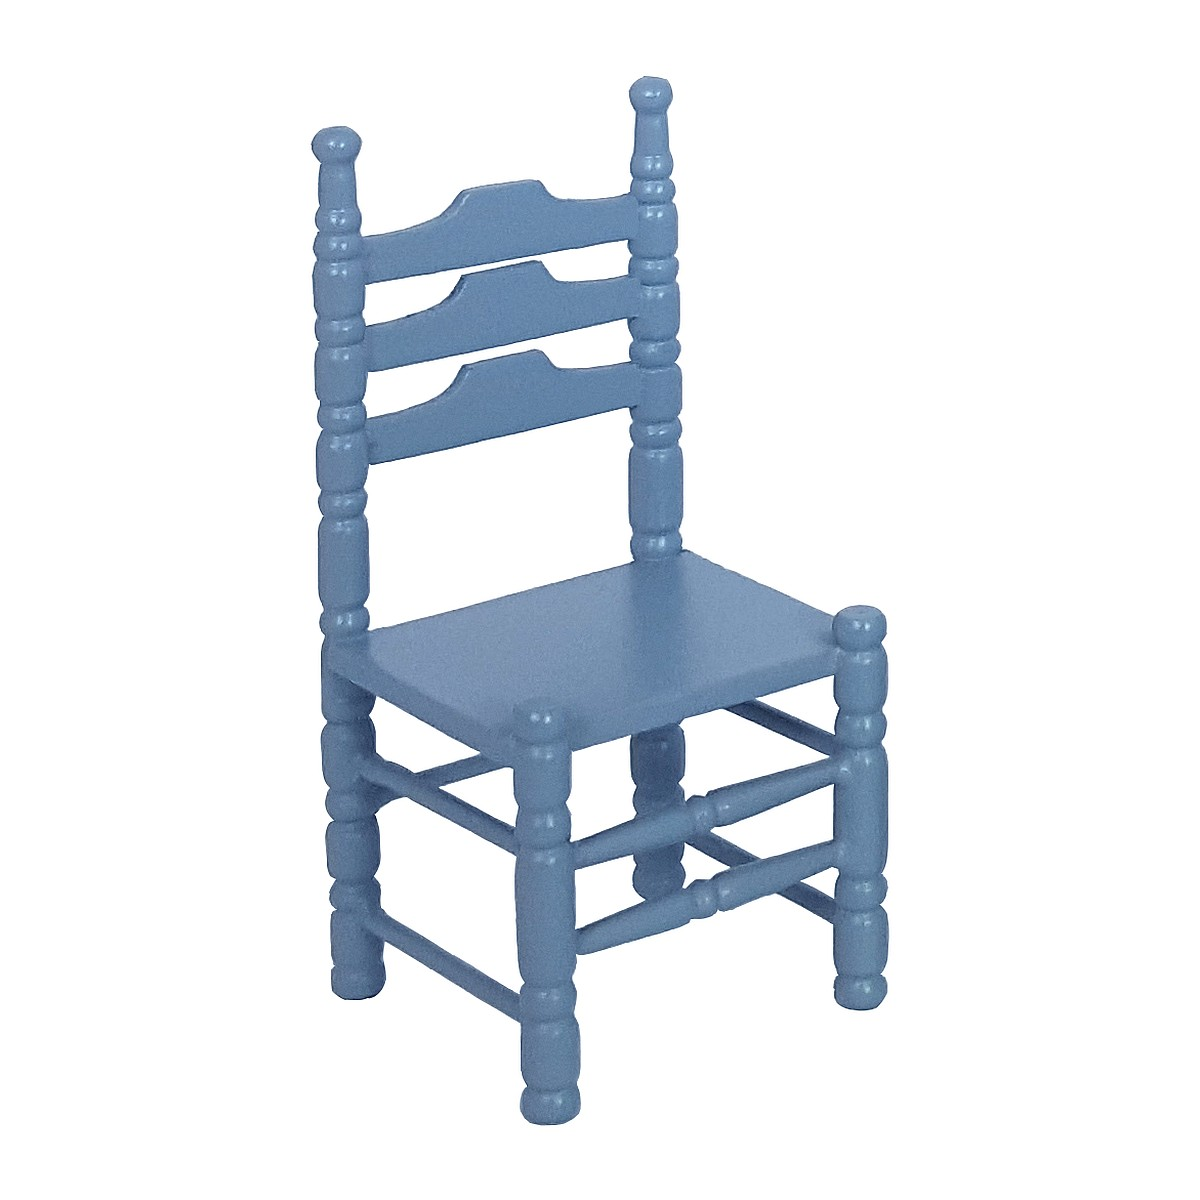 Chairs, blue, 2 pcs. 完成品・チェア2脚セット ブルー